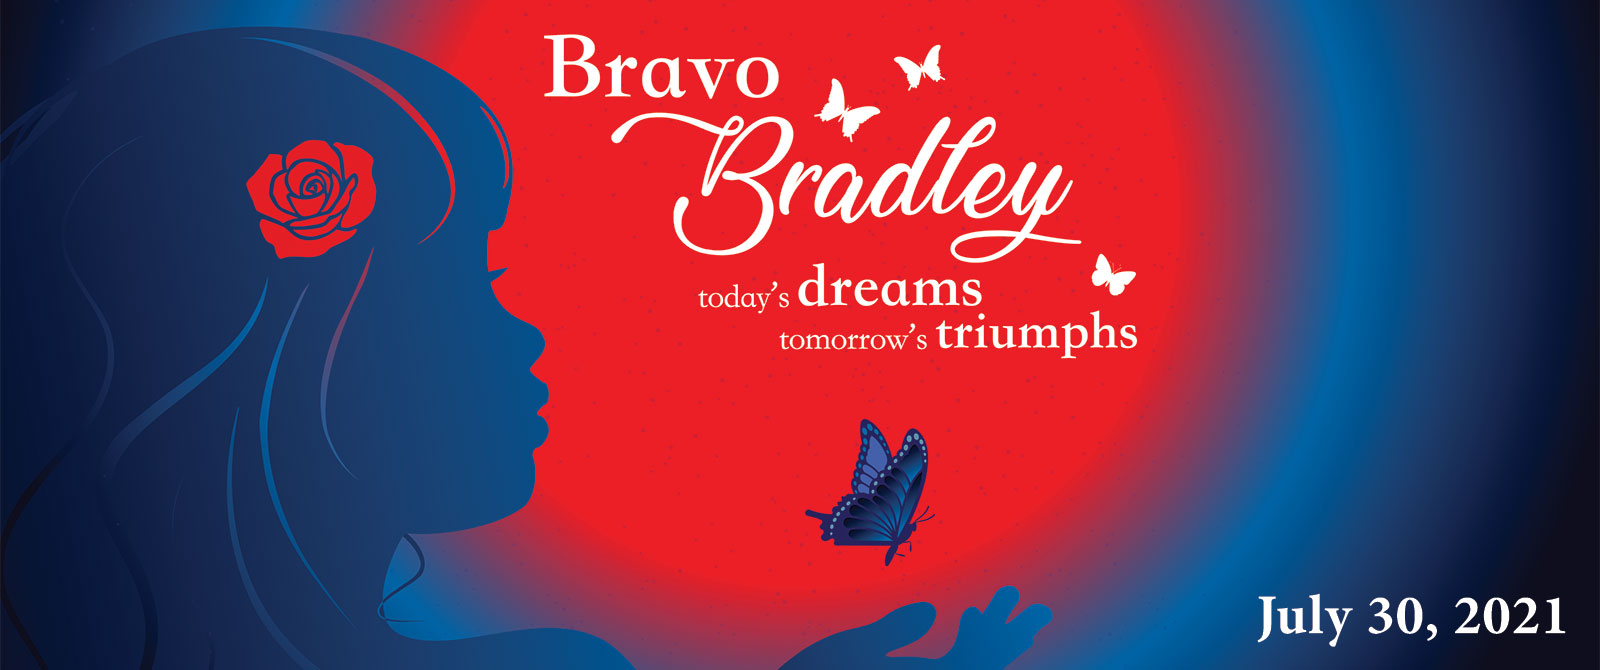 Bravo Bradley: Today's Dreams, Tomorrow's Triumphs